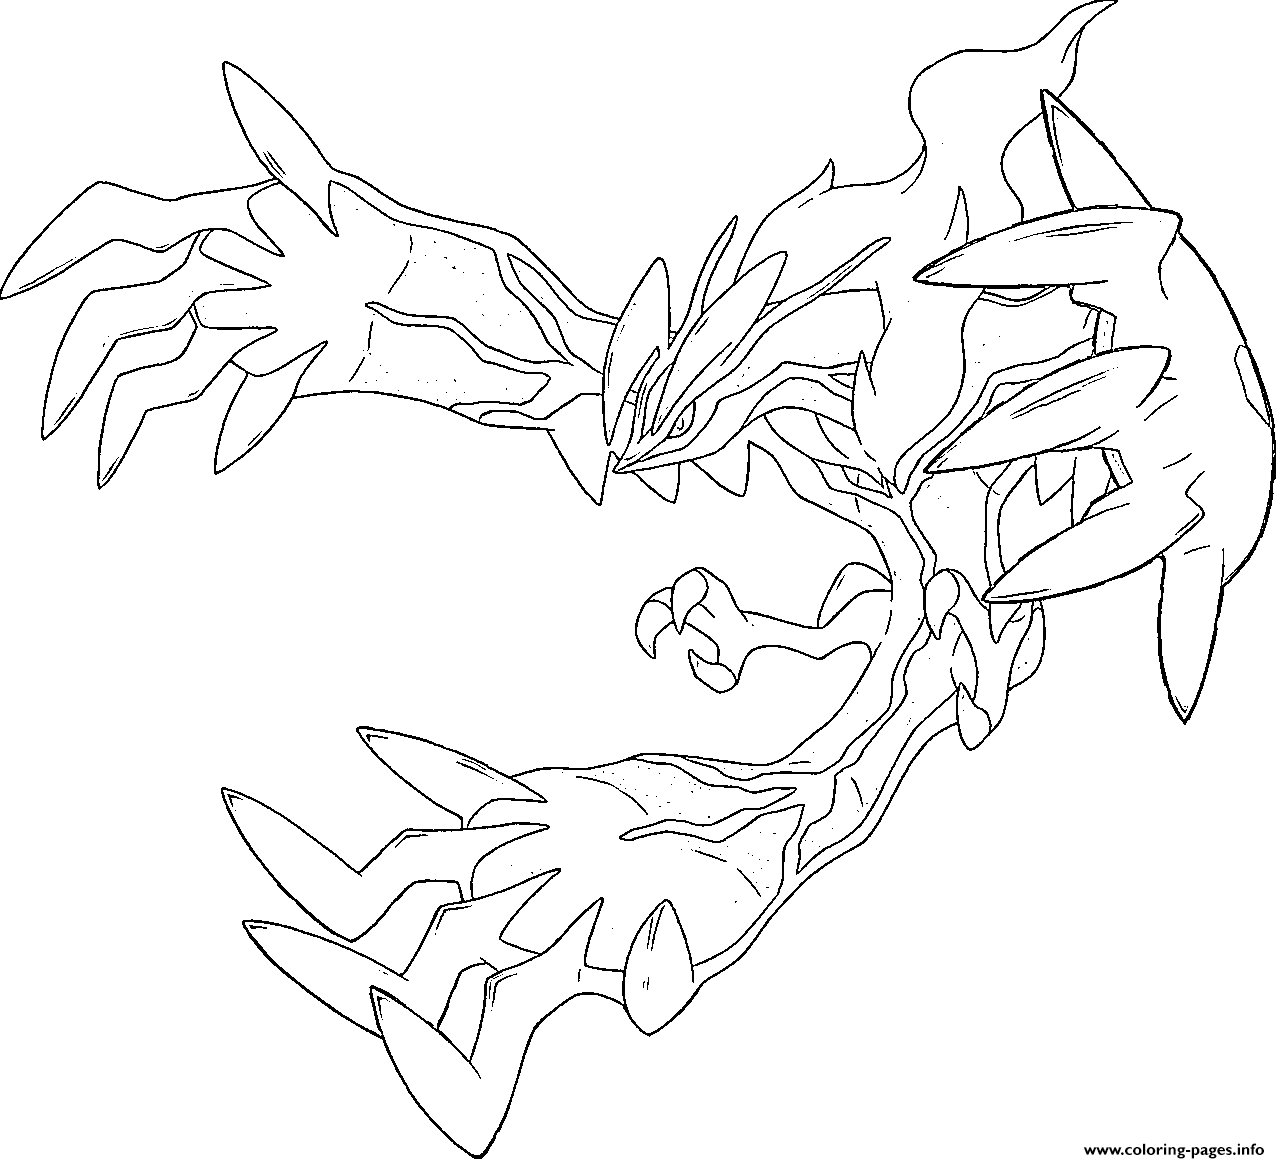 Yveltal Xy Pokemon Legendary Generation 6 Coloring Pages Printable